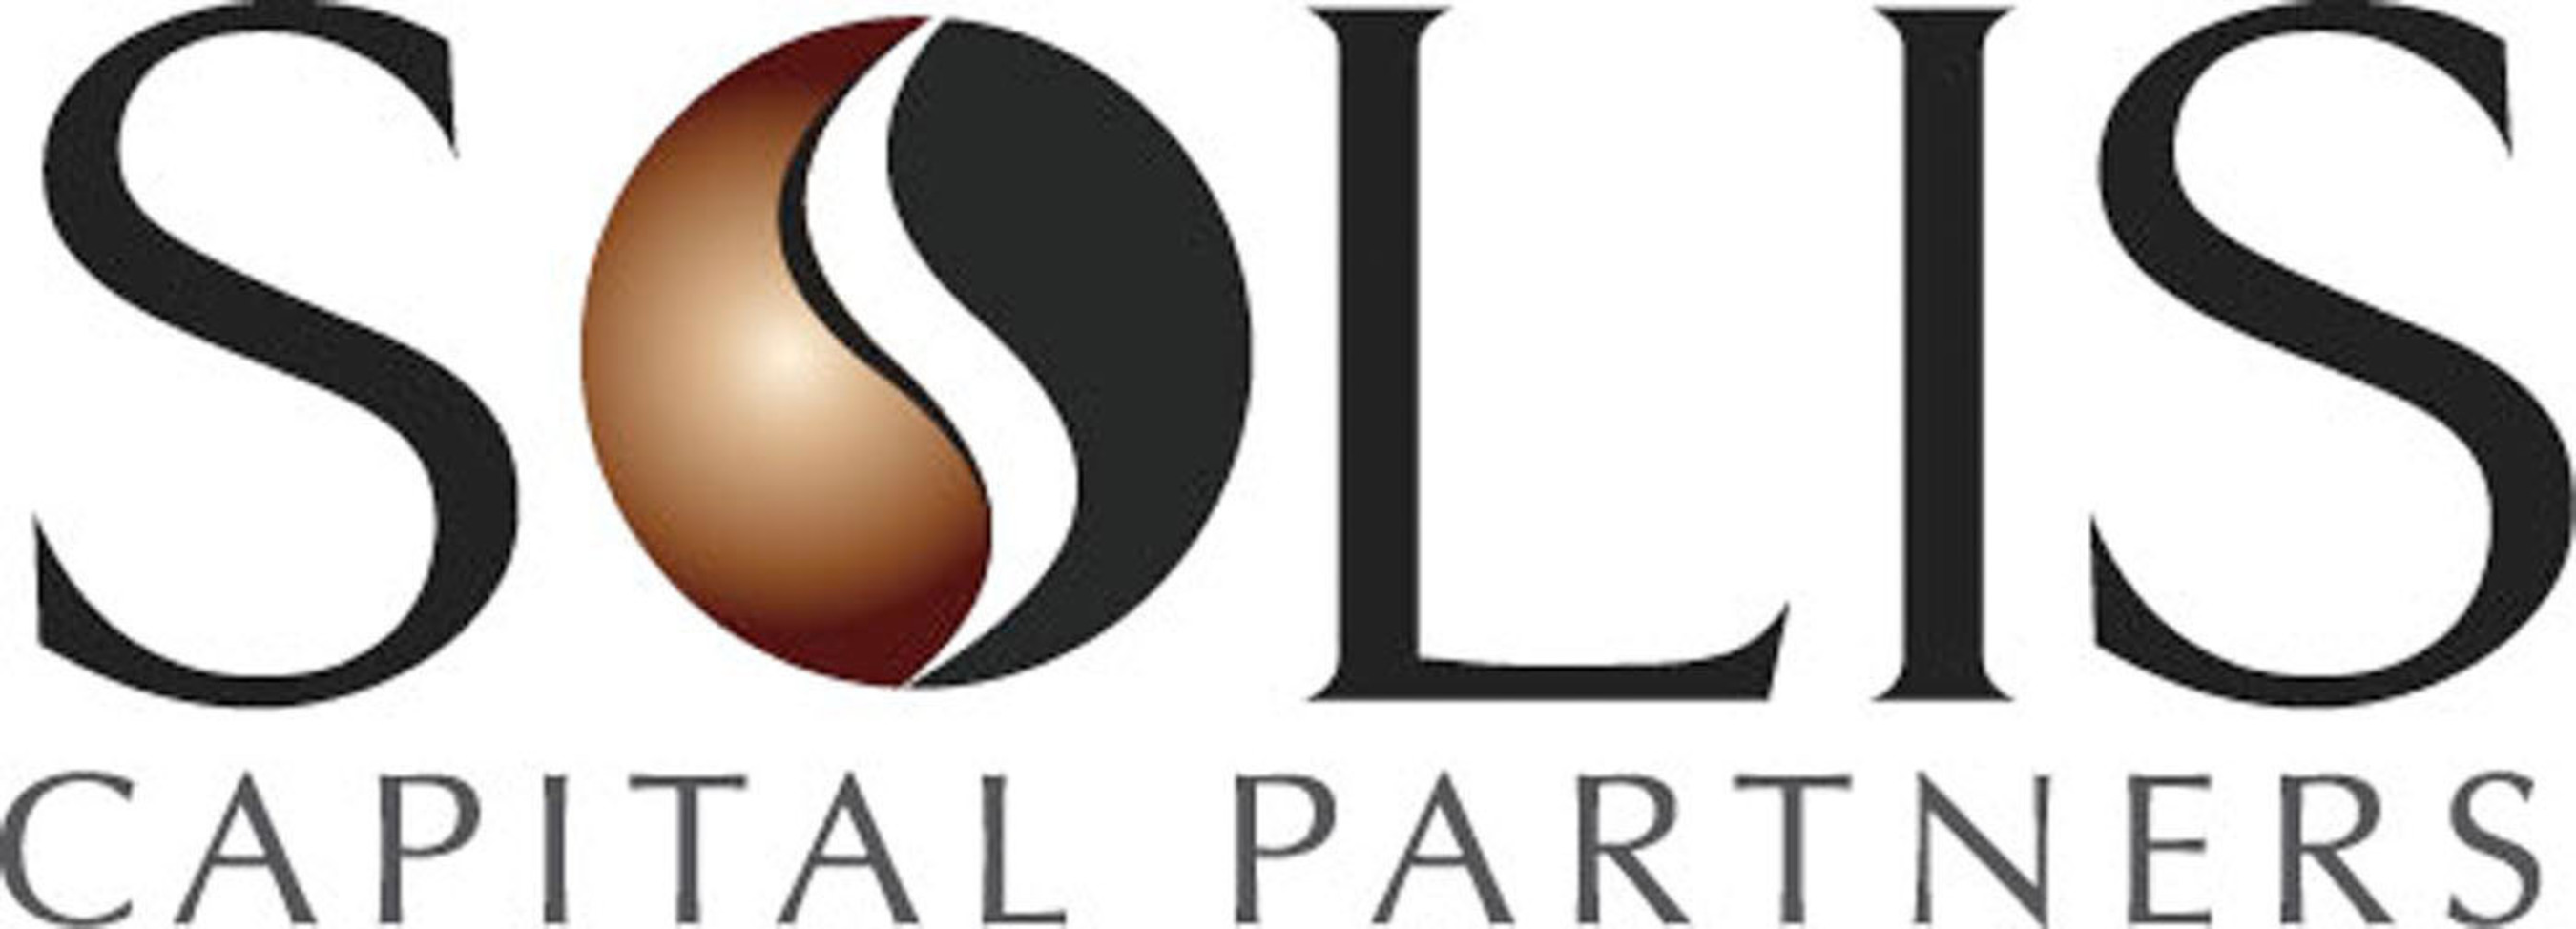 Solis Capital Partners - High Res Logo - July 2013.